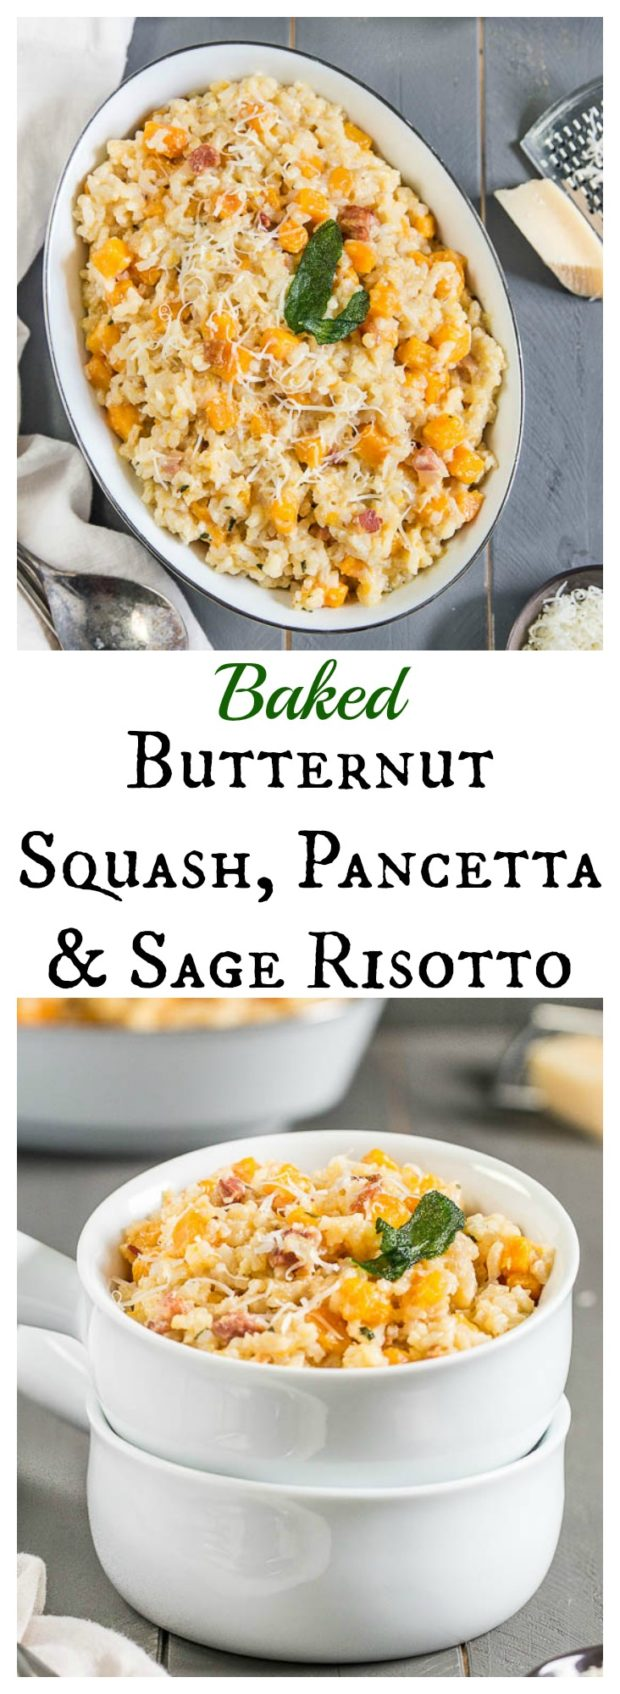 Baked Butternut Squash, Pancetta & Sage Risotto